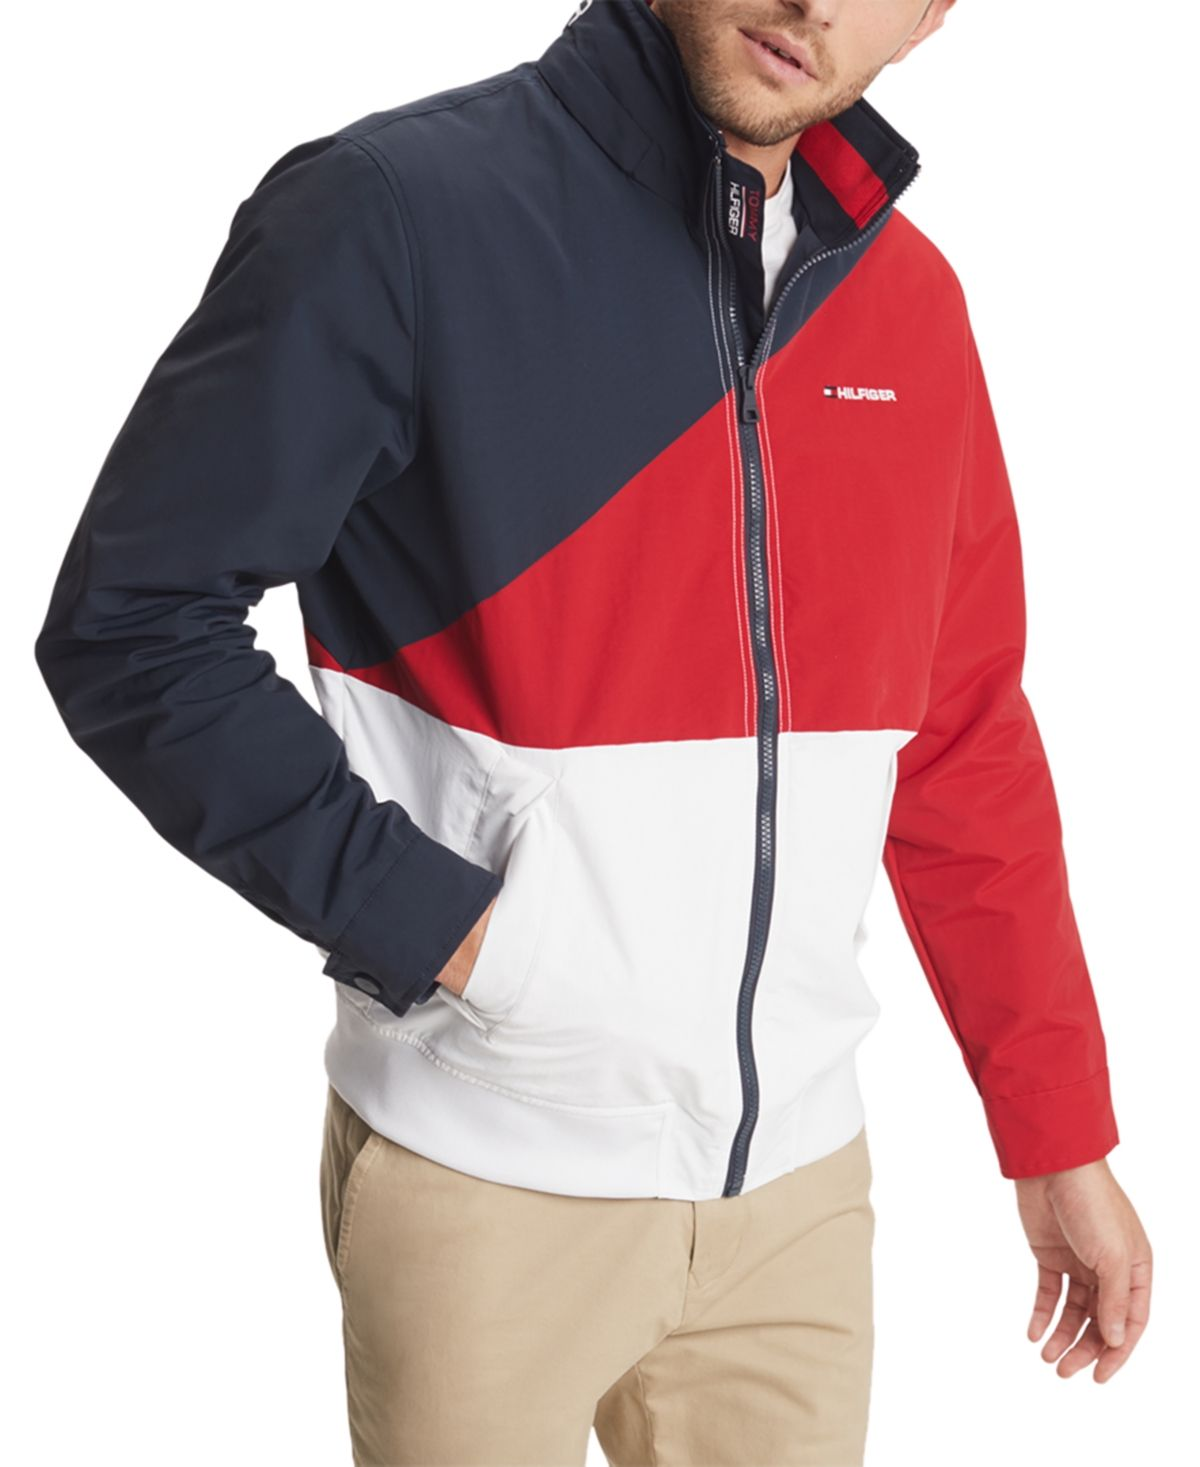 Tommy Hilfiger Men S Tate Colorblocked Yacht Jacket With Zip Out Hood Navy Blazer Bright White Romper Men Tommy Hilfiger Tommy Hilfiger Man [ 1467 x 1200 Pixel ]